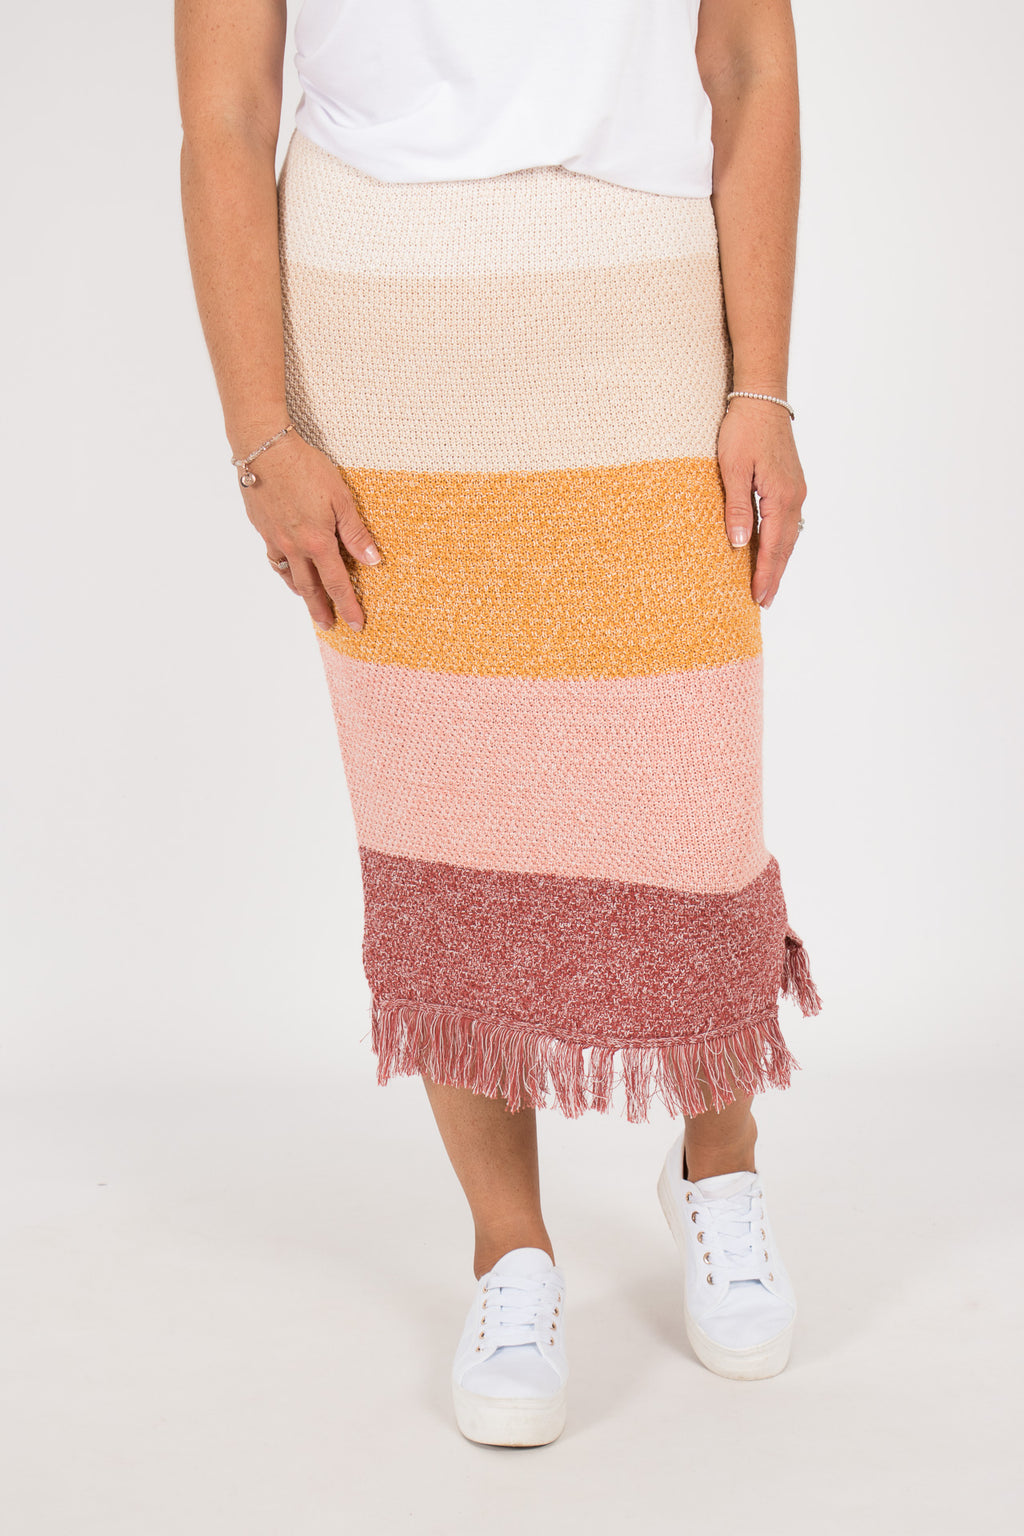 Karanda Knit Skirt in Earth